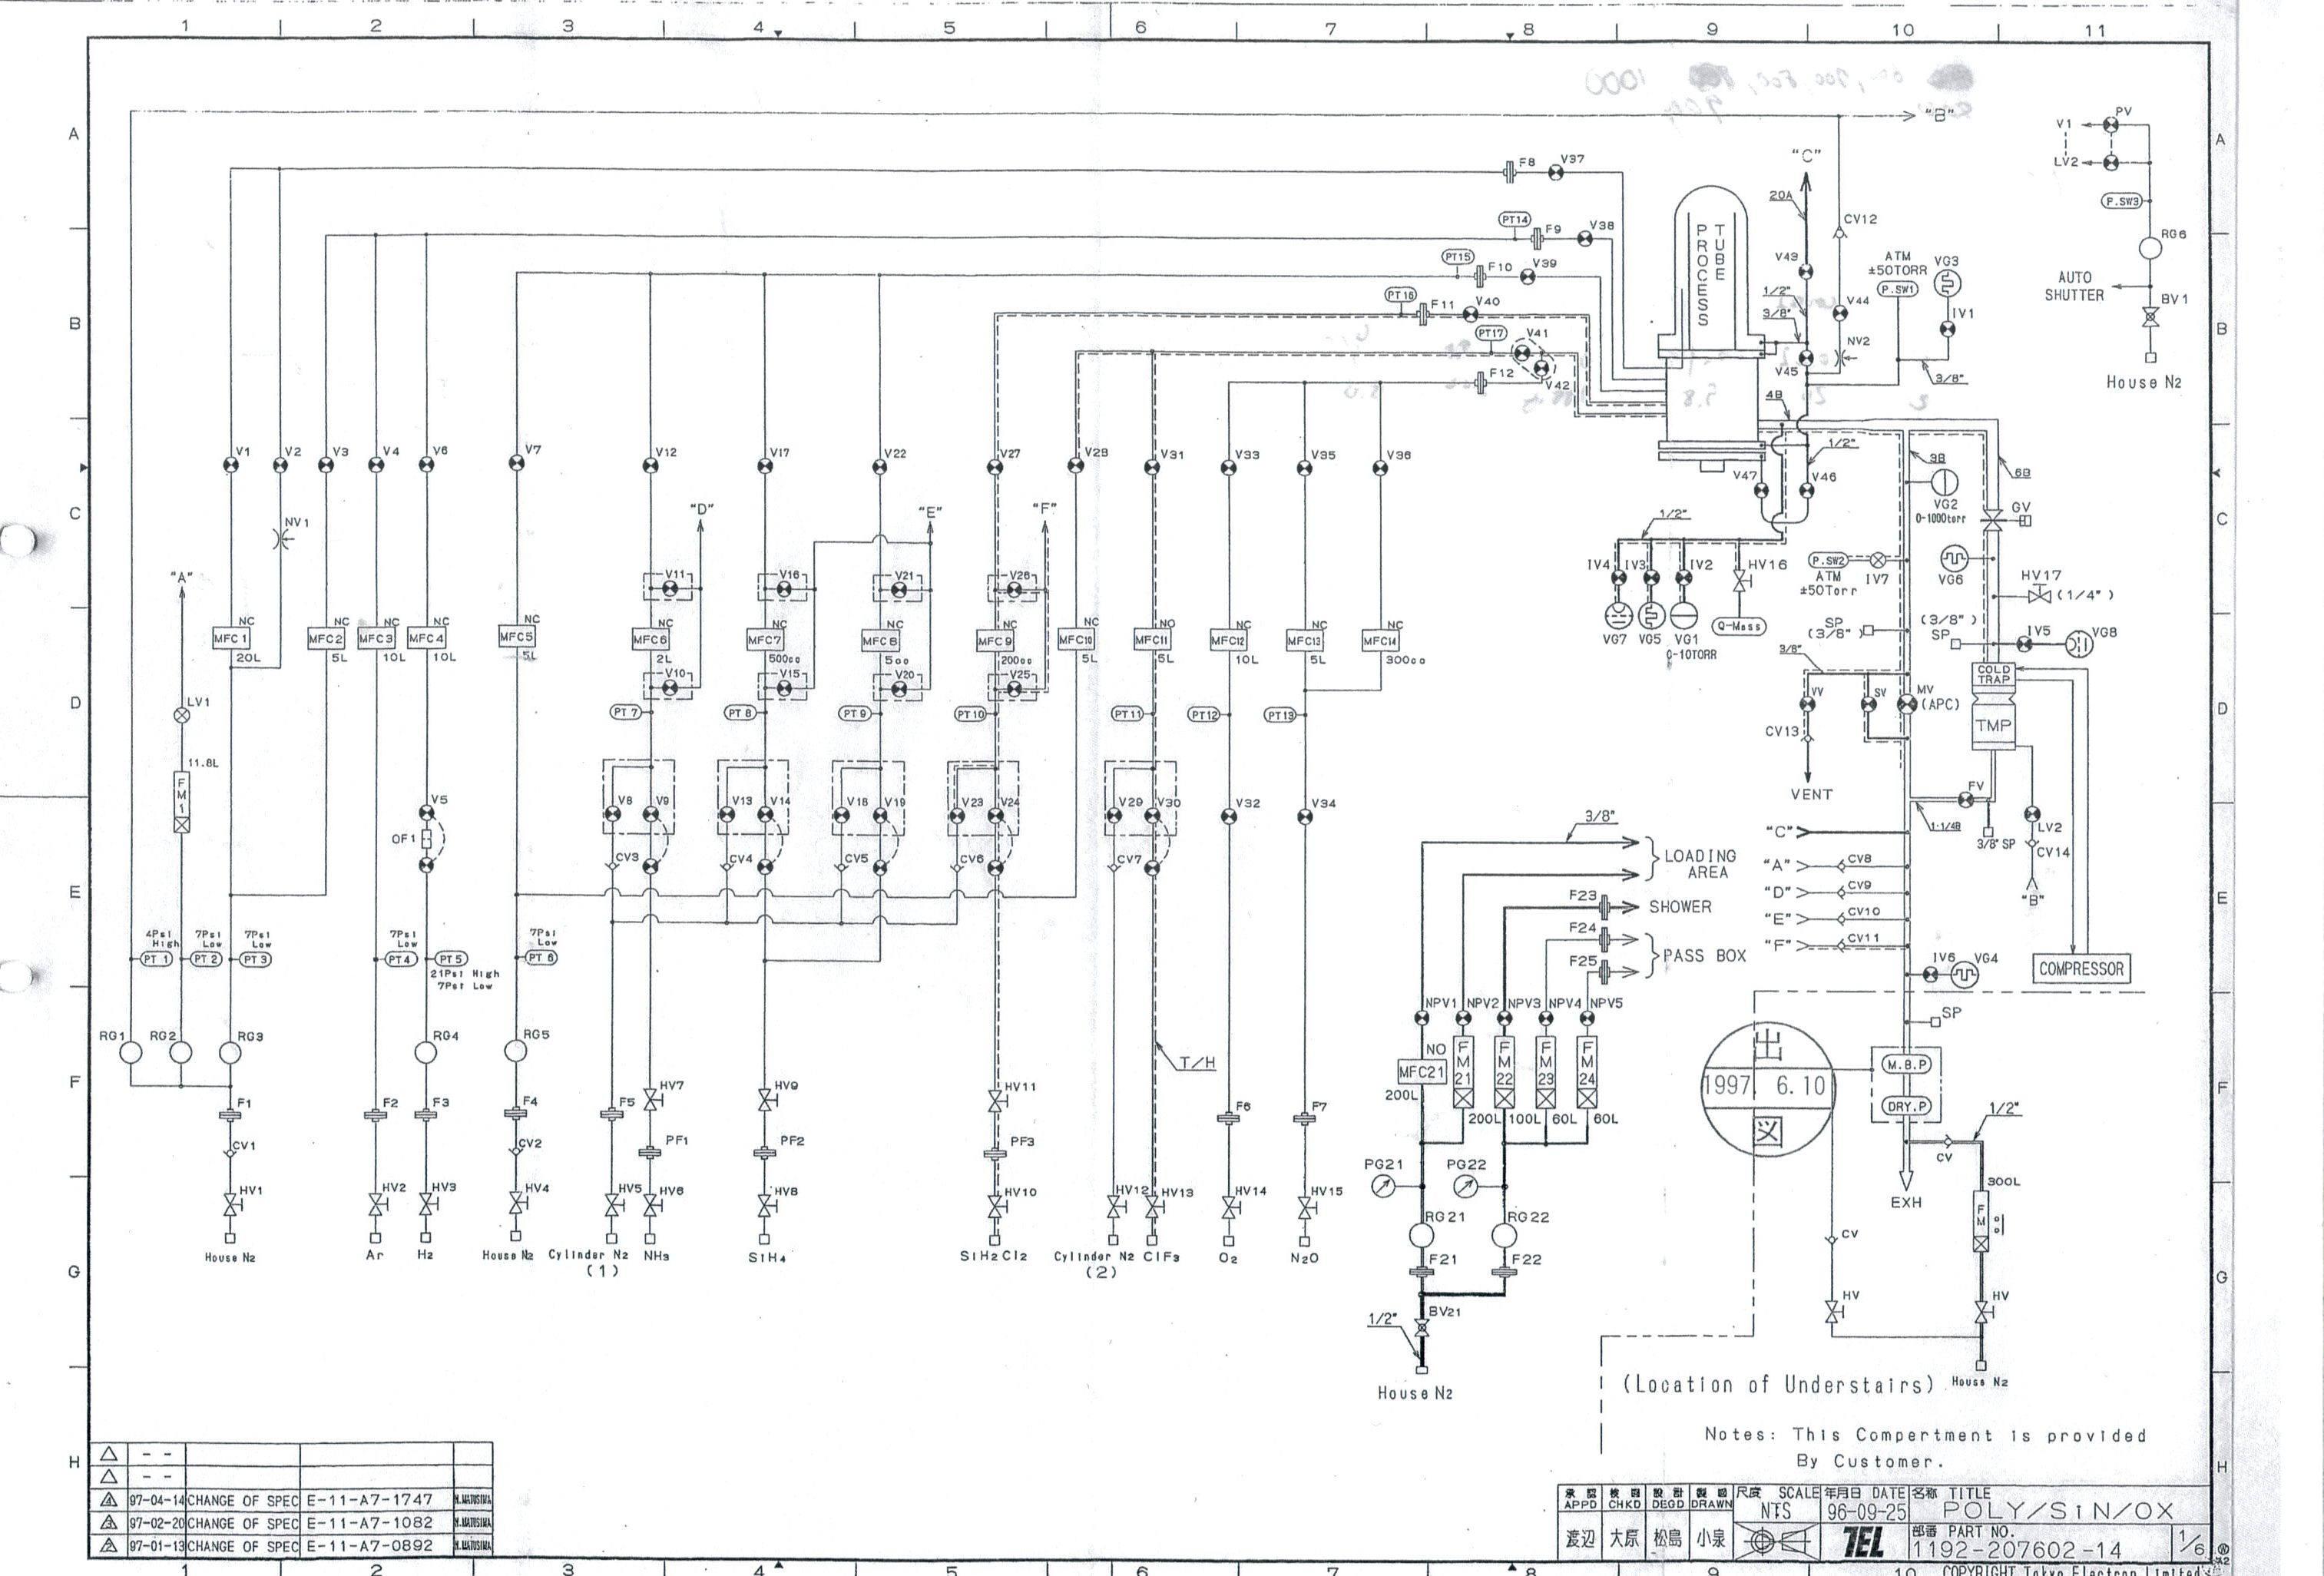 wiring diagram for honeywell aquastat with Honeywell R845a1030 Wiring Diagram on Taco 570 Zone Valve Wiring Diagram moreover Fan Center Relay Wiring Diagram further Honeywell R845a1030 Wiring Diagram as well Septic Tank Pump Wiring Diagram additionally 482551 Wiring 2 Circulators.